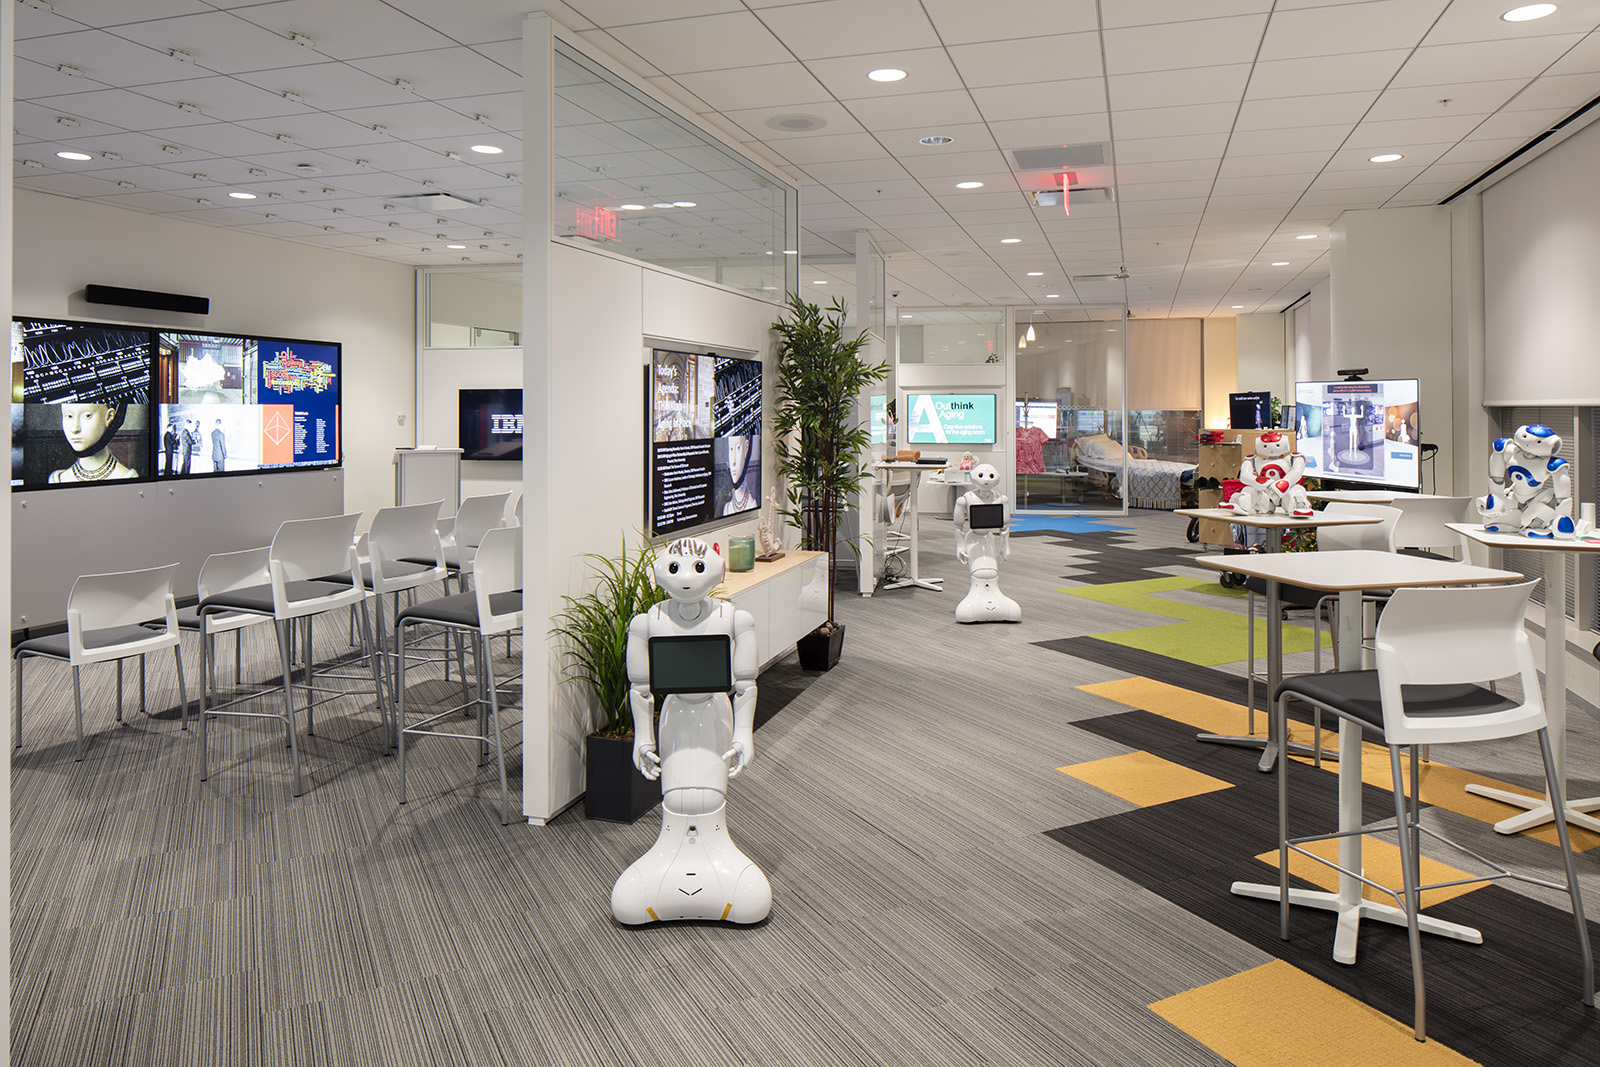 Photo of the IBM Aging-in-Place environment in Austin, Texas. Looking down a long room with four different robots standing and sitting on tables.